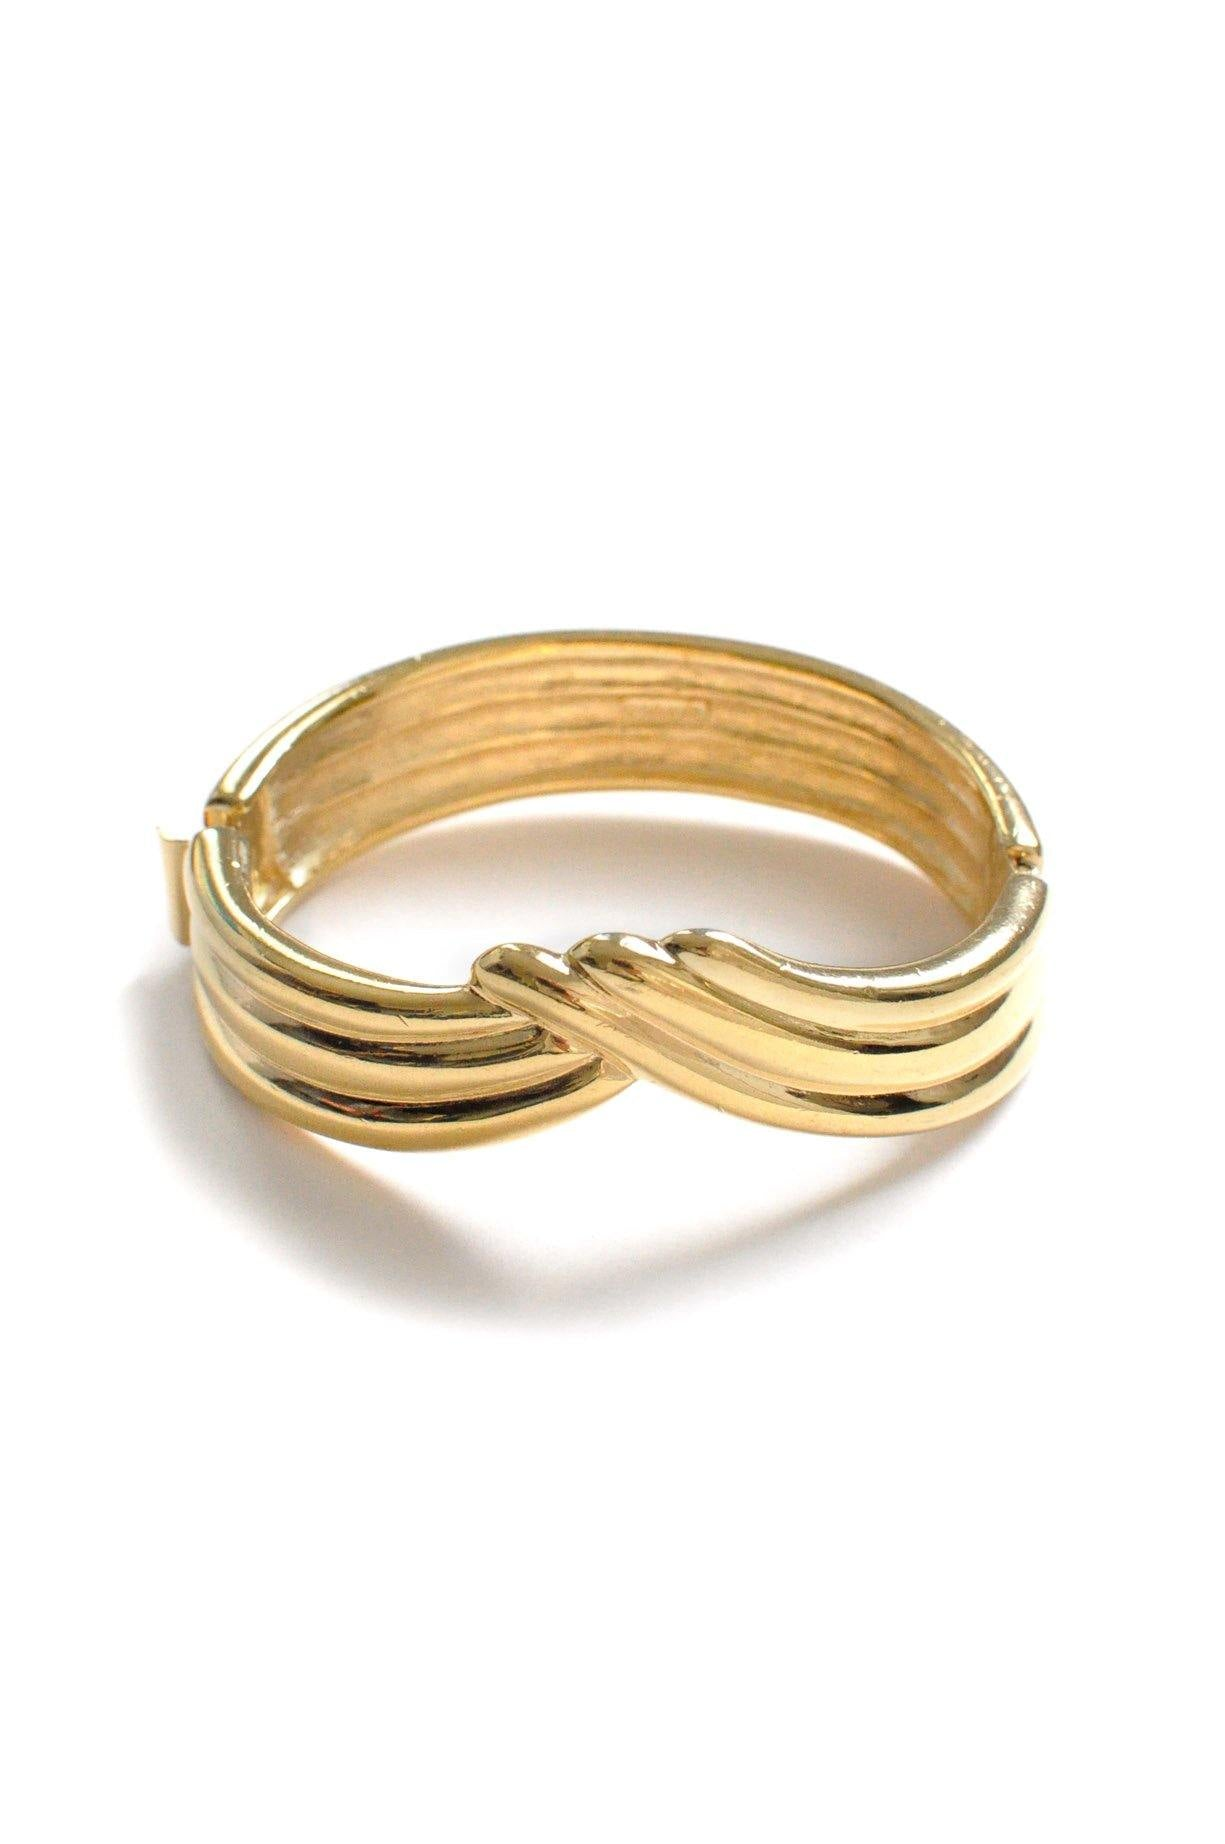 Waved Bangle Bracelet